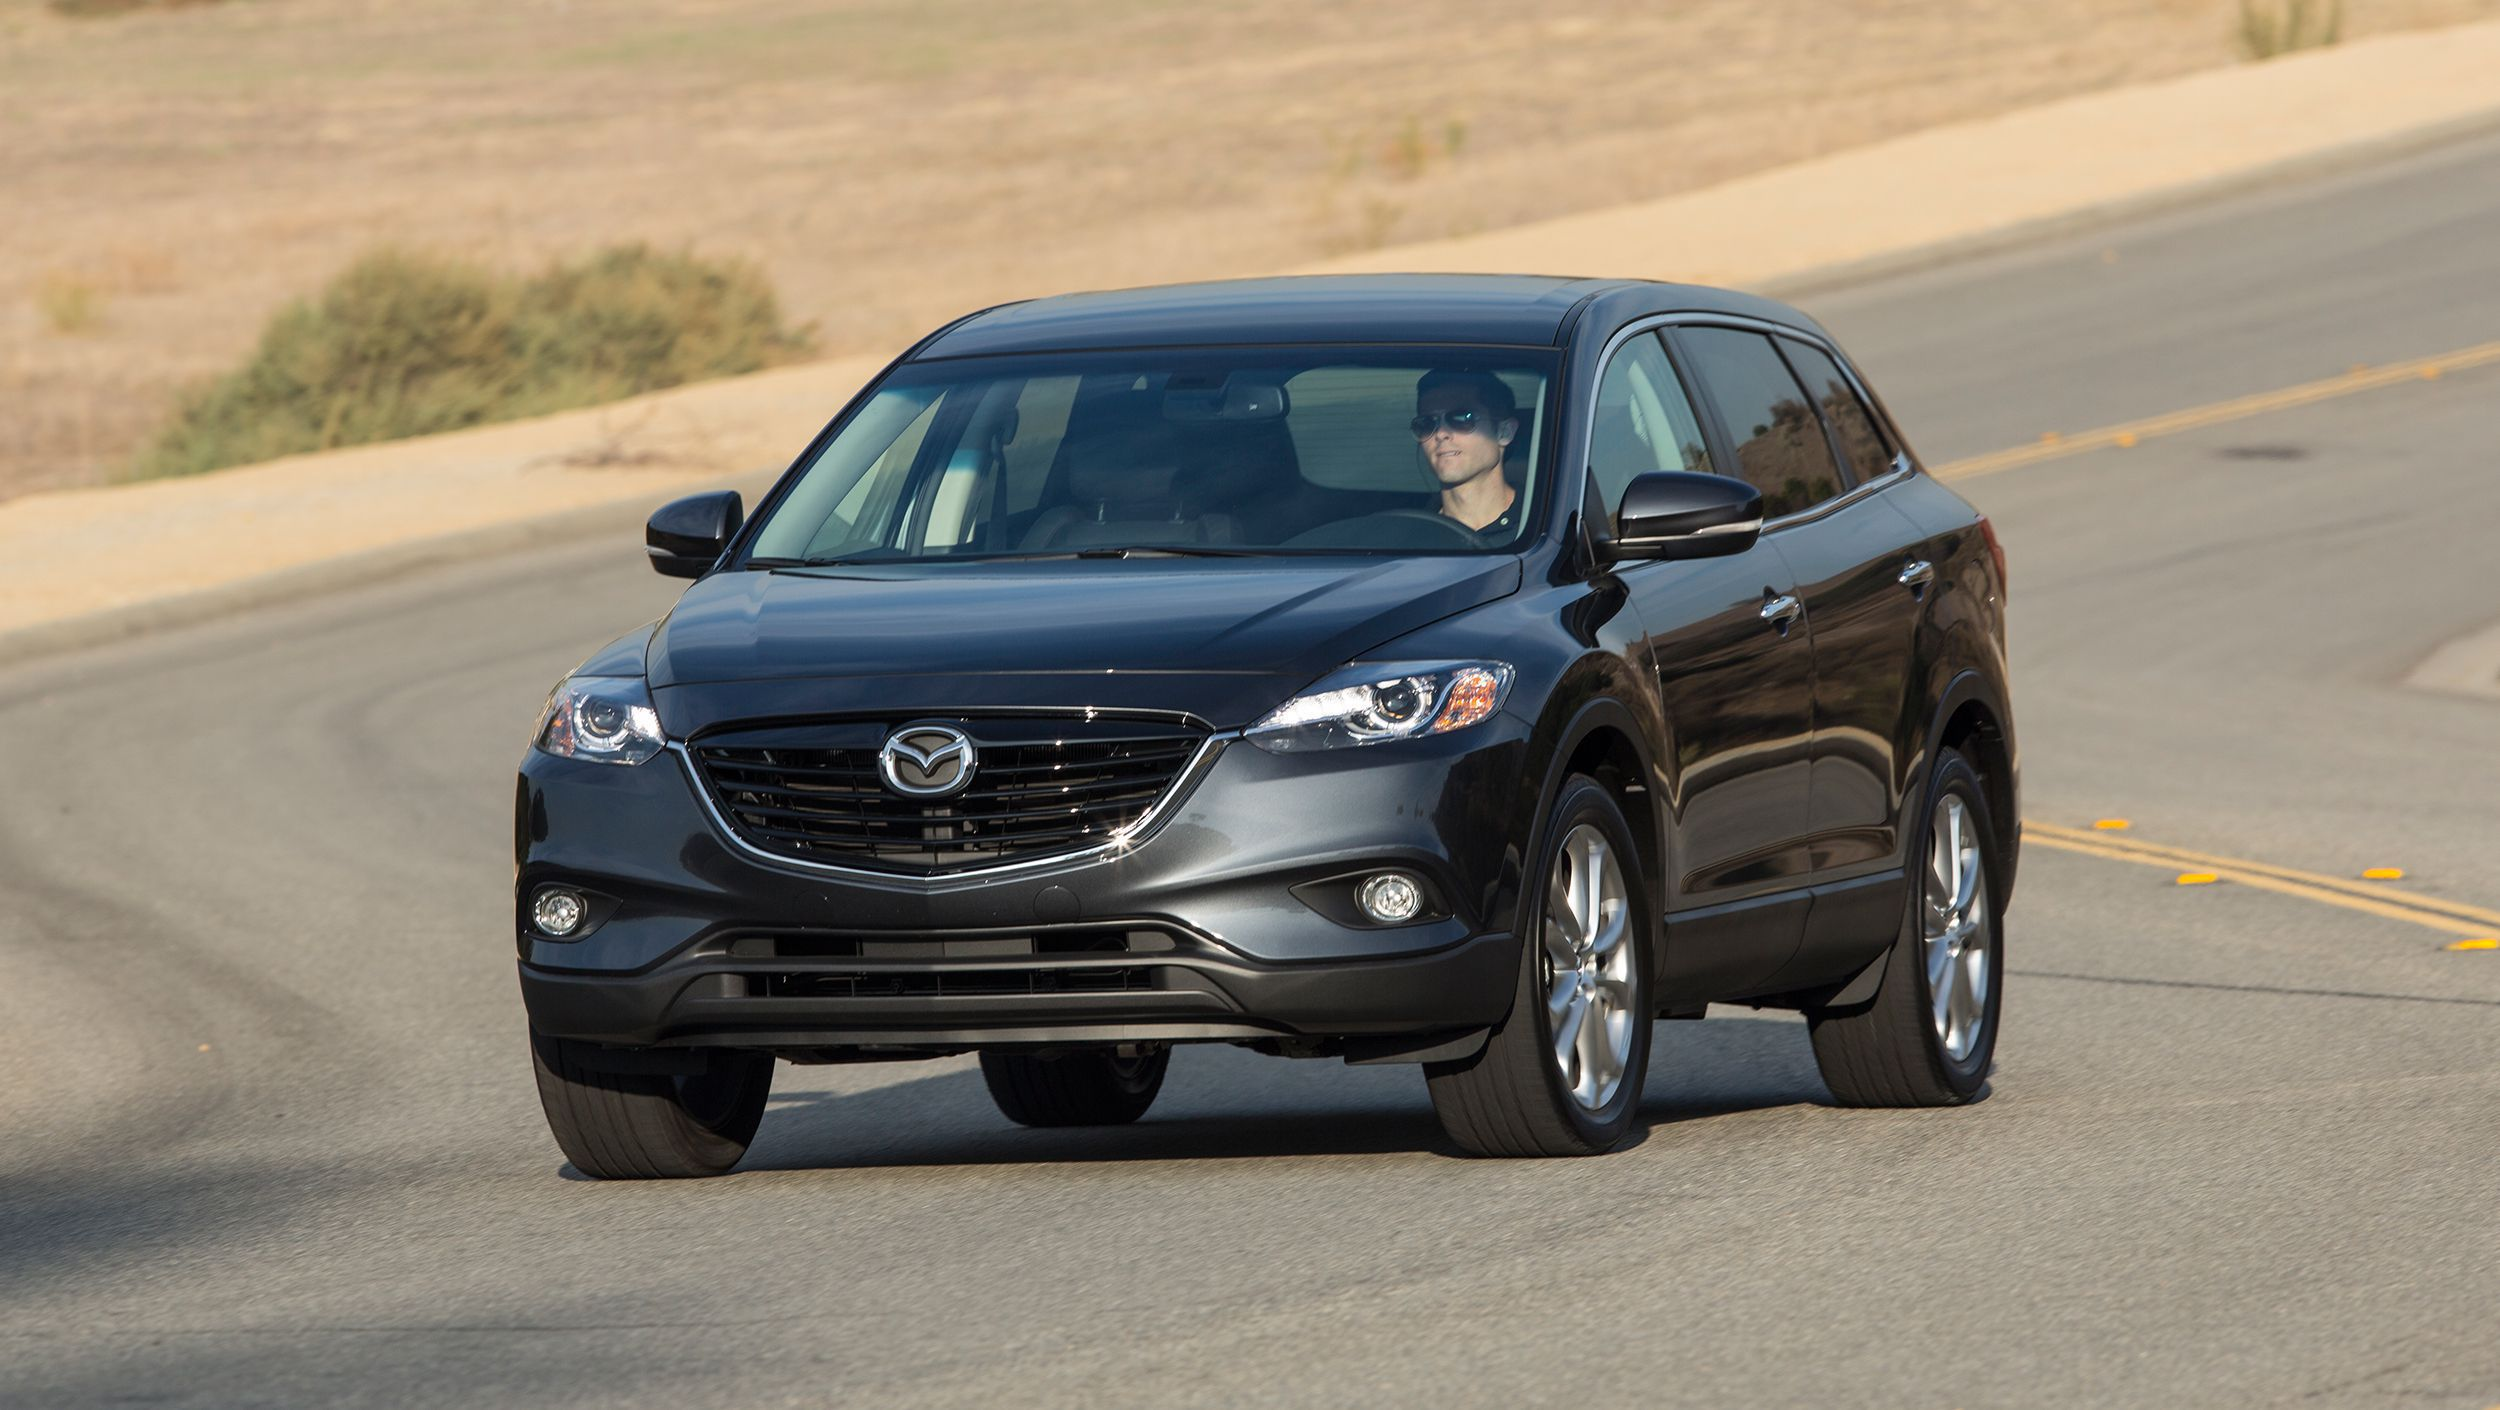 Future Mazda CX-9 to Ditch Current V6 for Turbo, Not Diesel | Auto ...